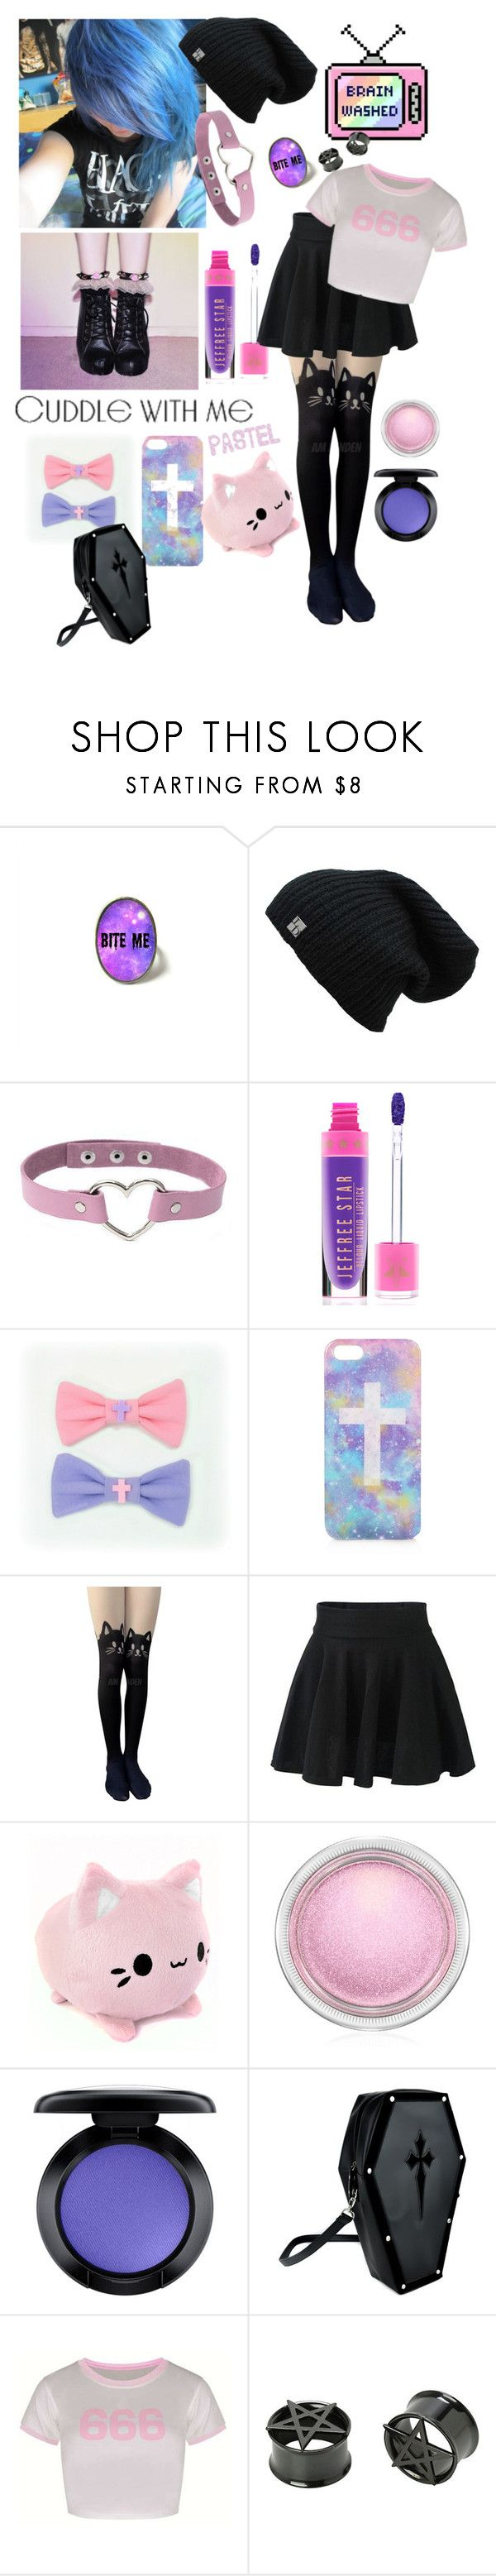 """""""One of my Favorite Pastel Goth Sets Now that I've Made"""" by crybaby1117 ❤ liked on Polyvore featuring Topshop and MAC Cosmetics"""